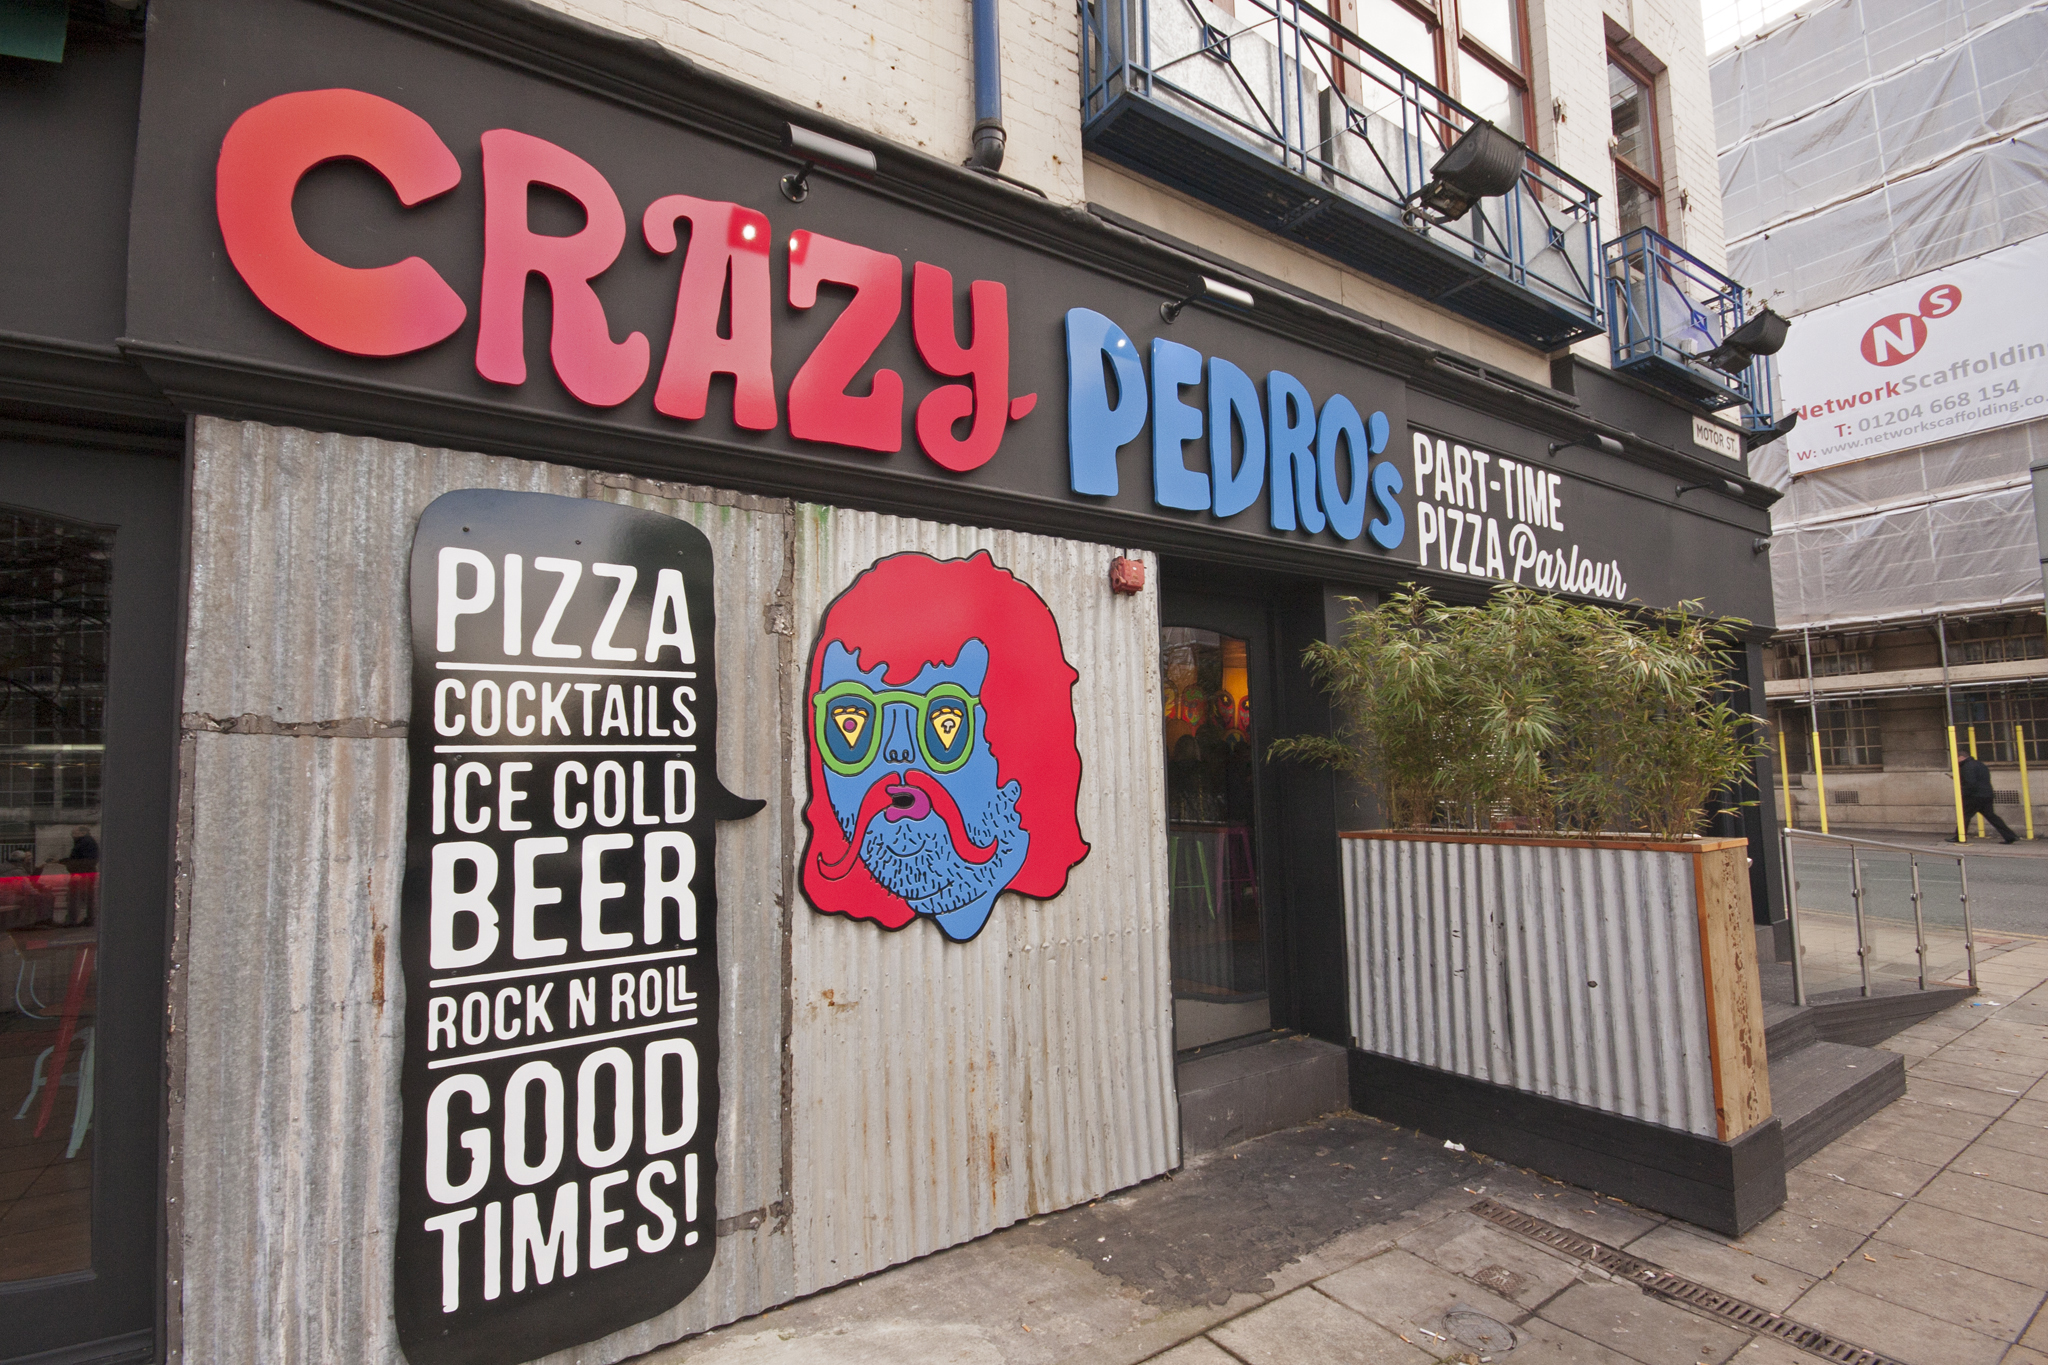 Crazy Pedro's Part-Time Pizza Parlour, Restaurants, Manchester